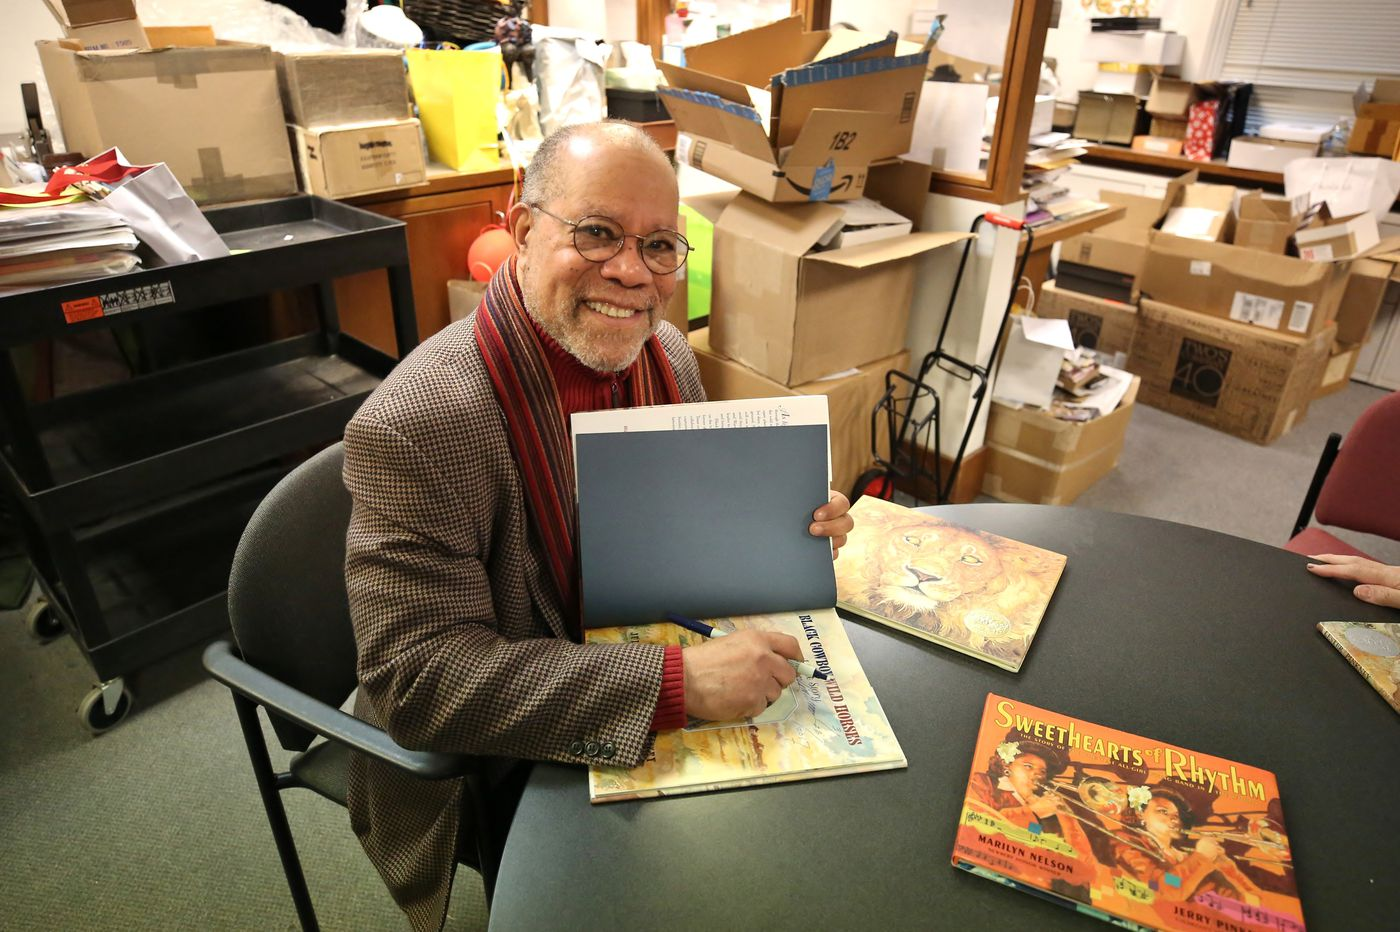 Beloved kids' book illustrator Jerry Pinkney has a big new show in Chestnut Hill